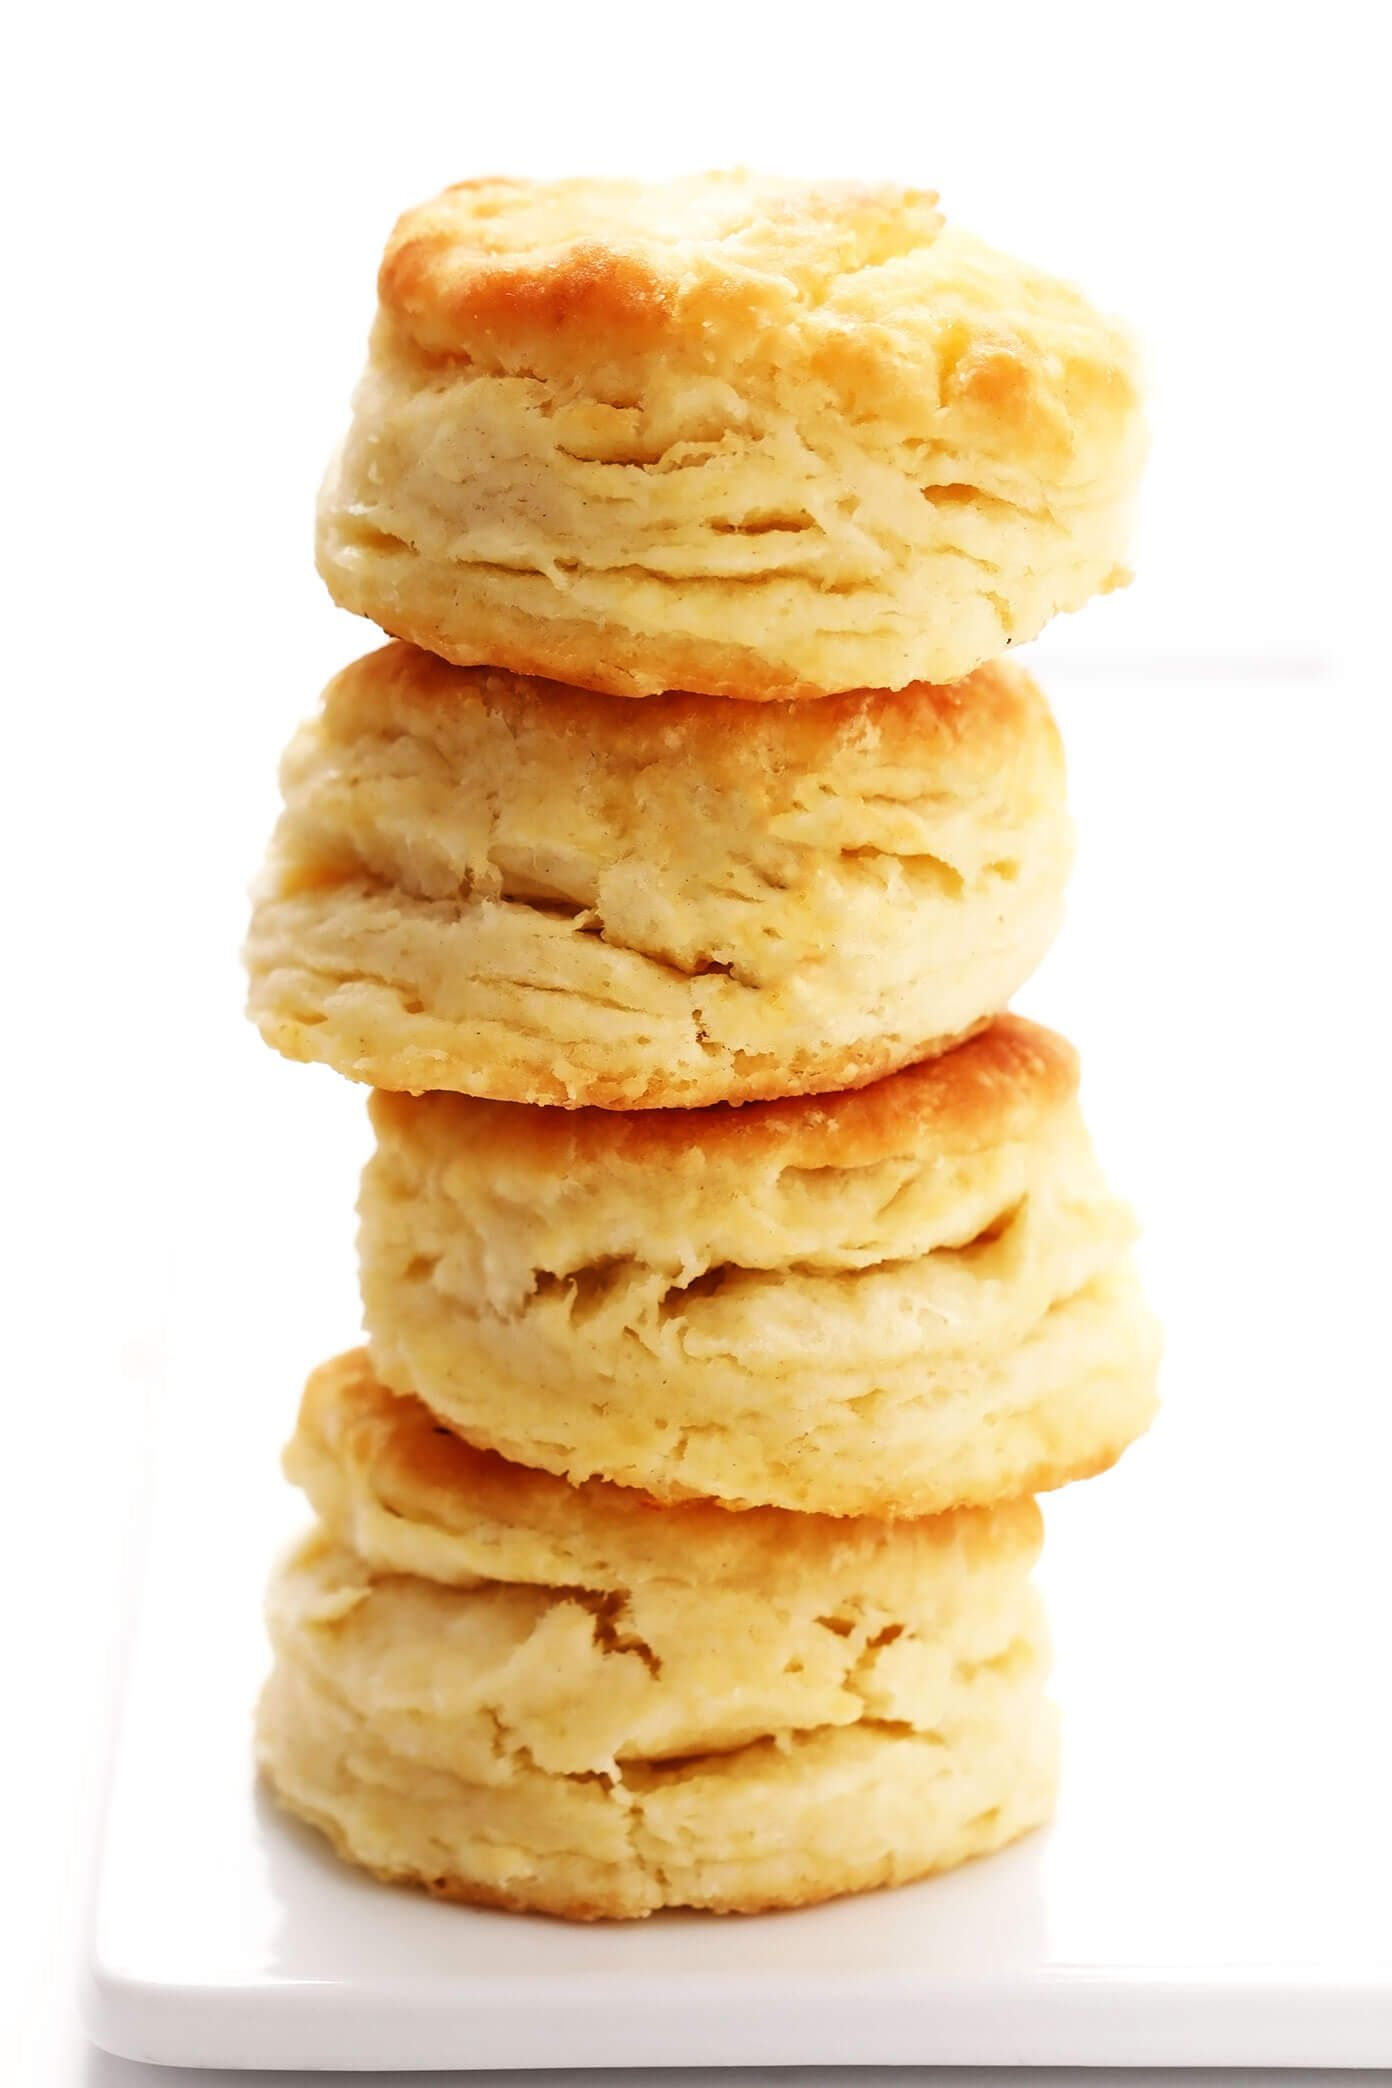 Homemade Buttermilk Biscuits Recipe Gimme Some Oven Recipe In 2020 Homemade Buttermilk Homemade Biscuits Recipe Homemade Buttermilk Biscuits